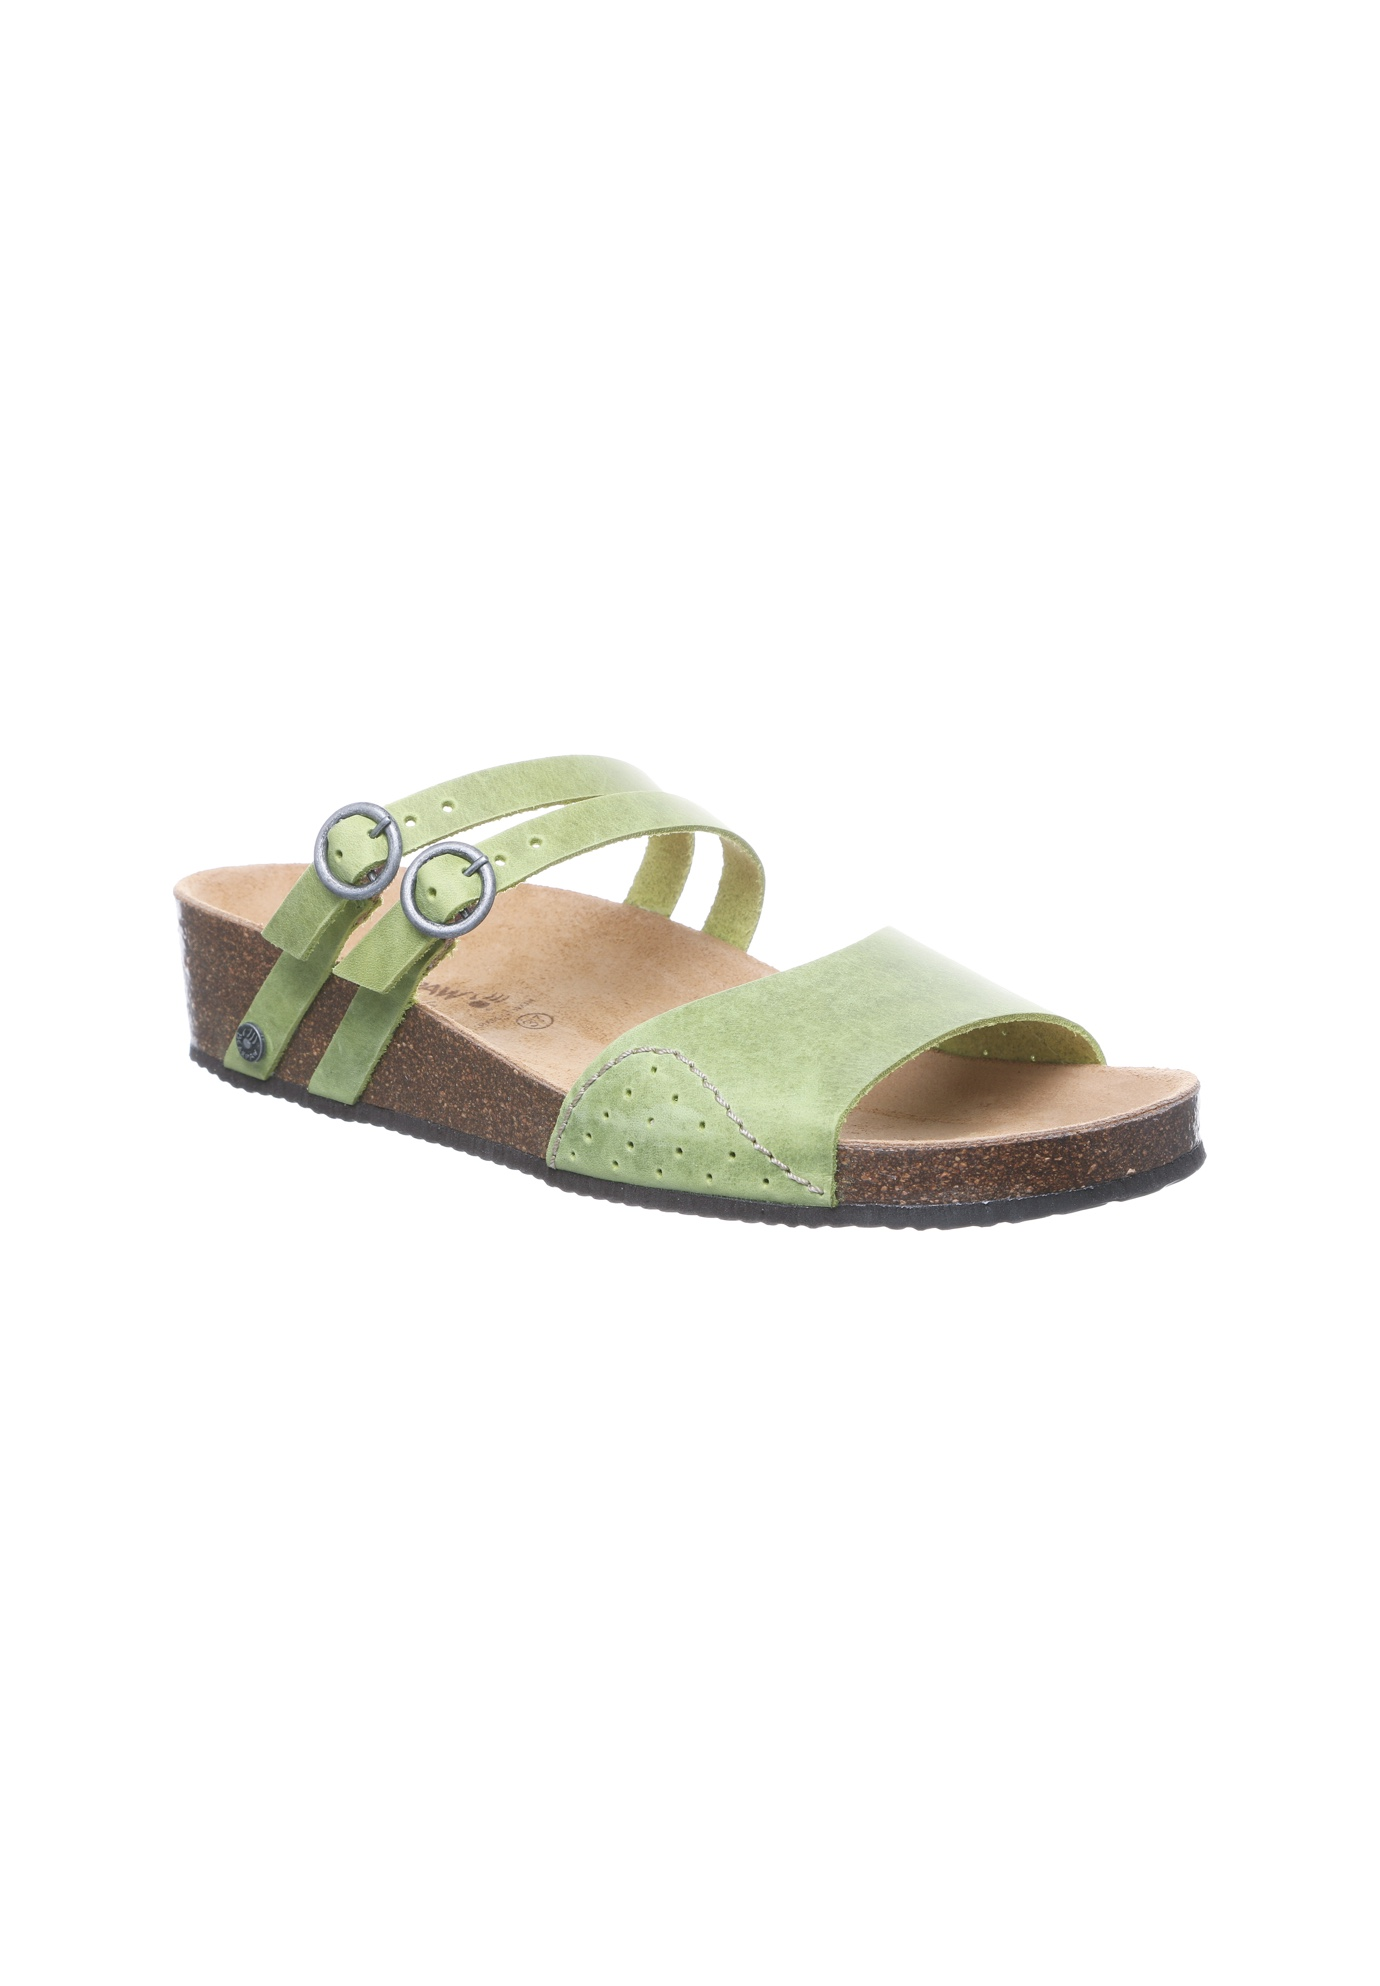 Amoria Slides by Bearpaw,